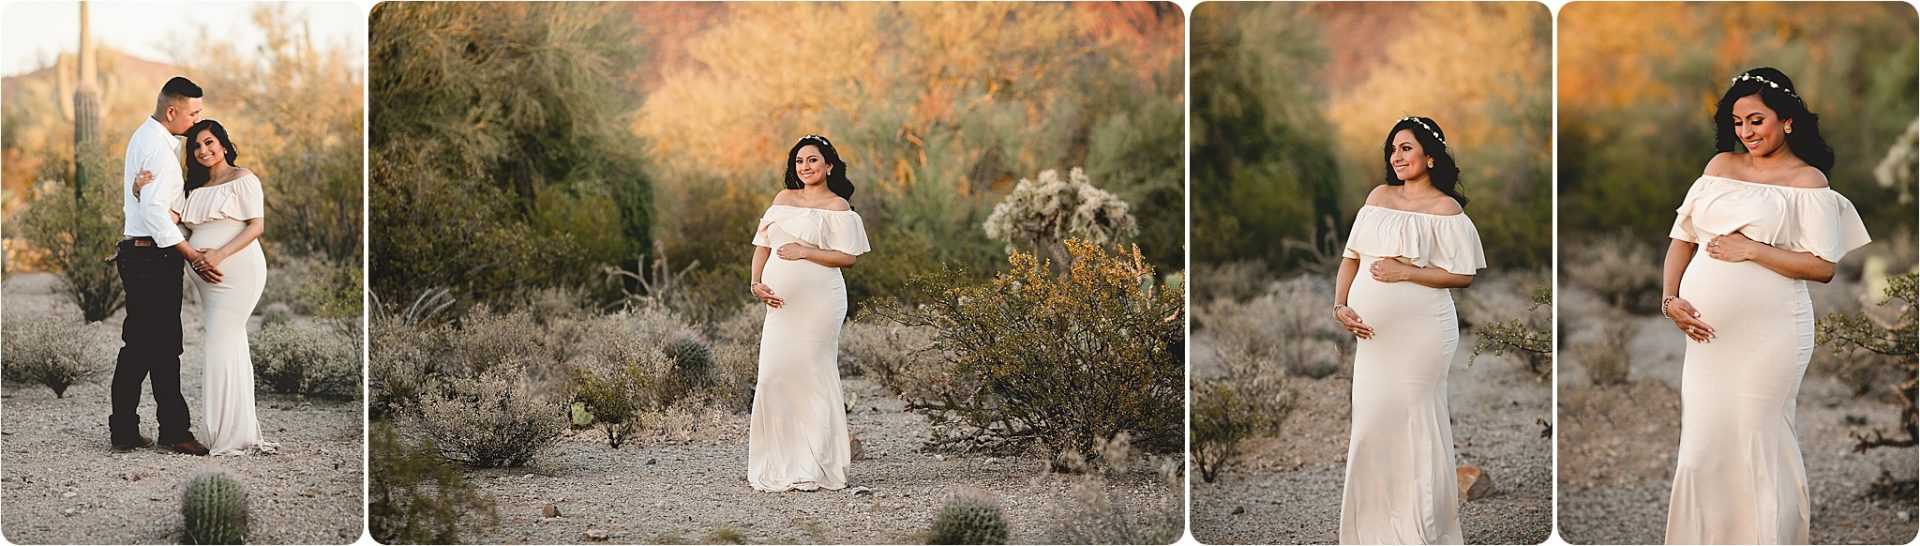 Tucson Maternity and Baby Photographer